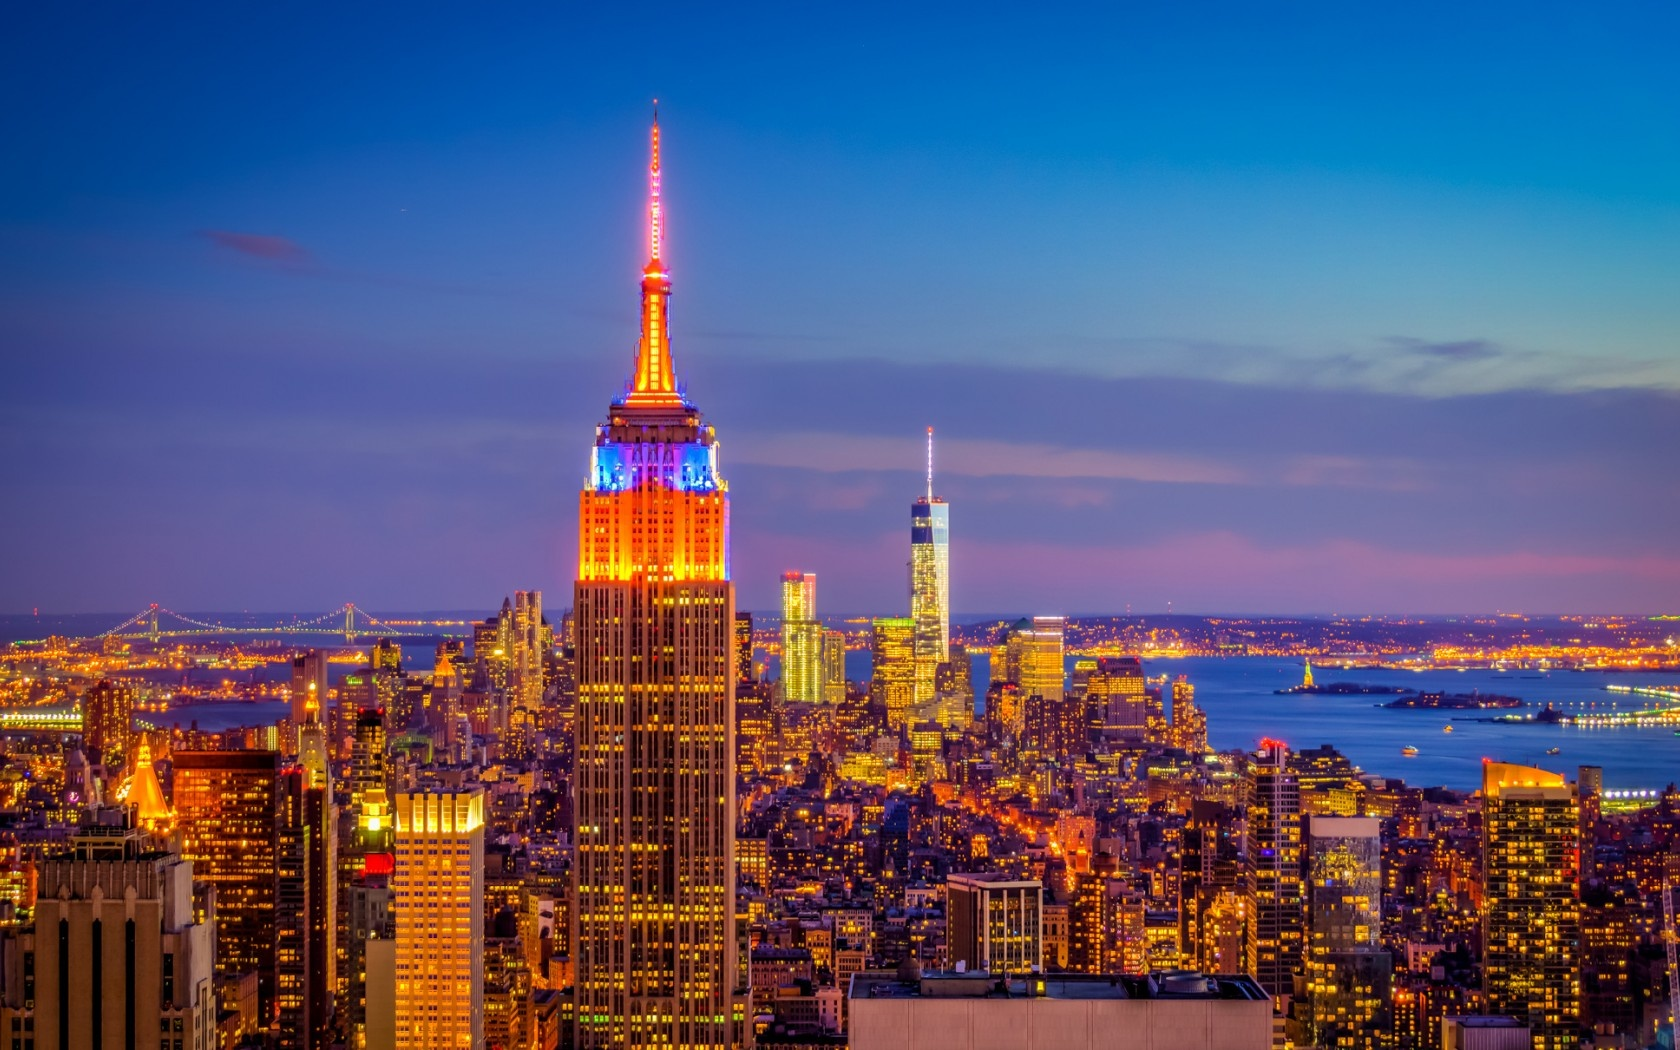 empire state building computer wallpaper 51586